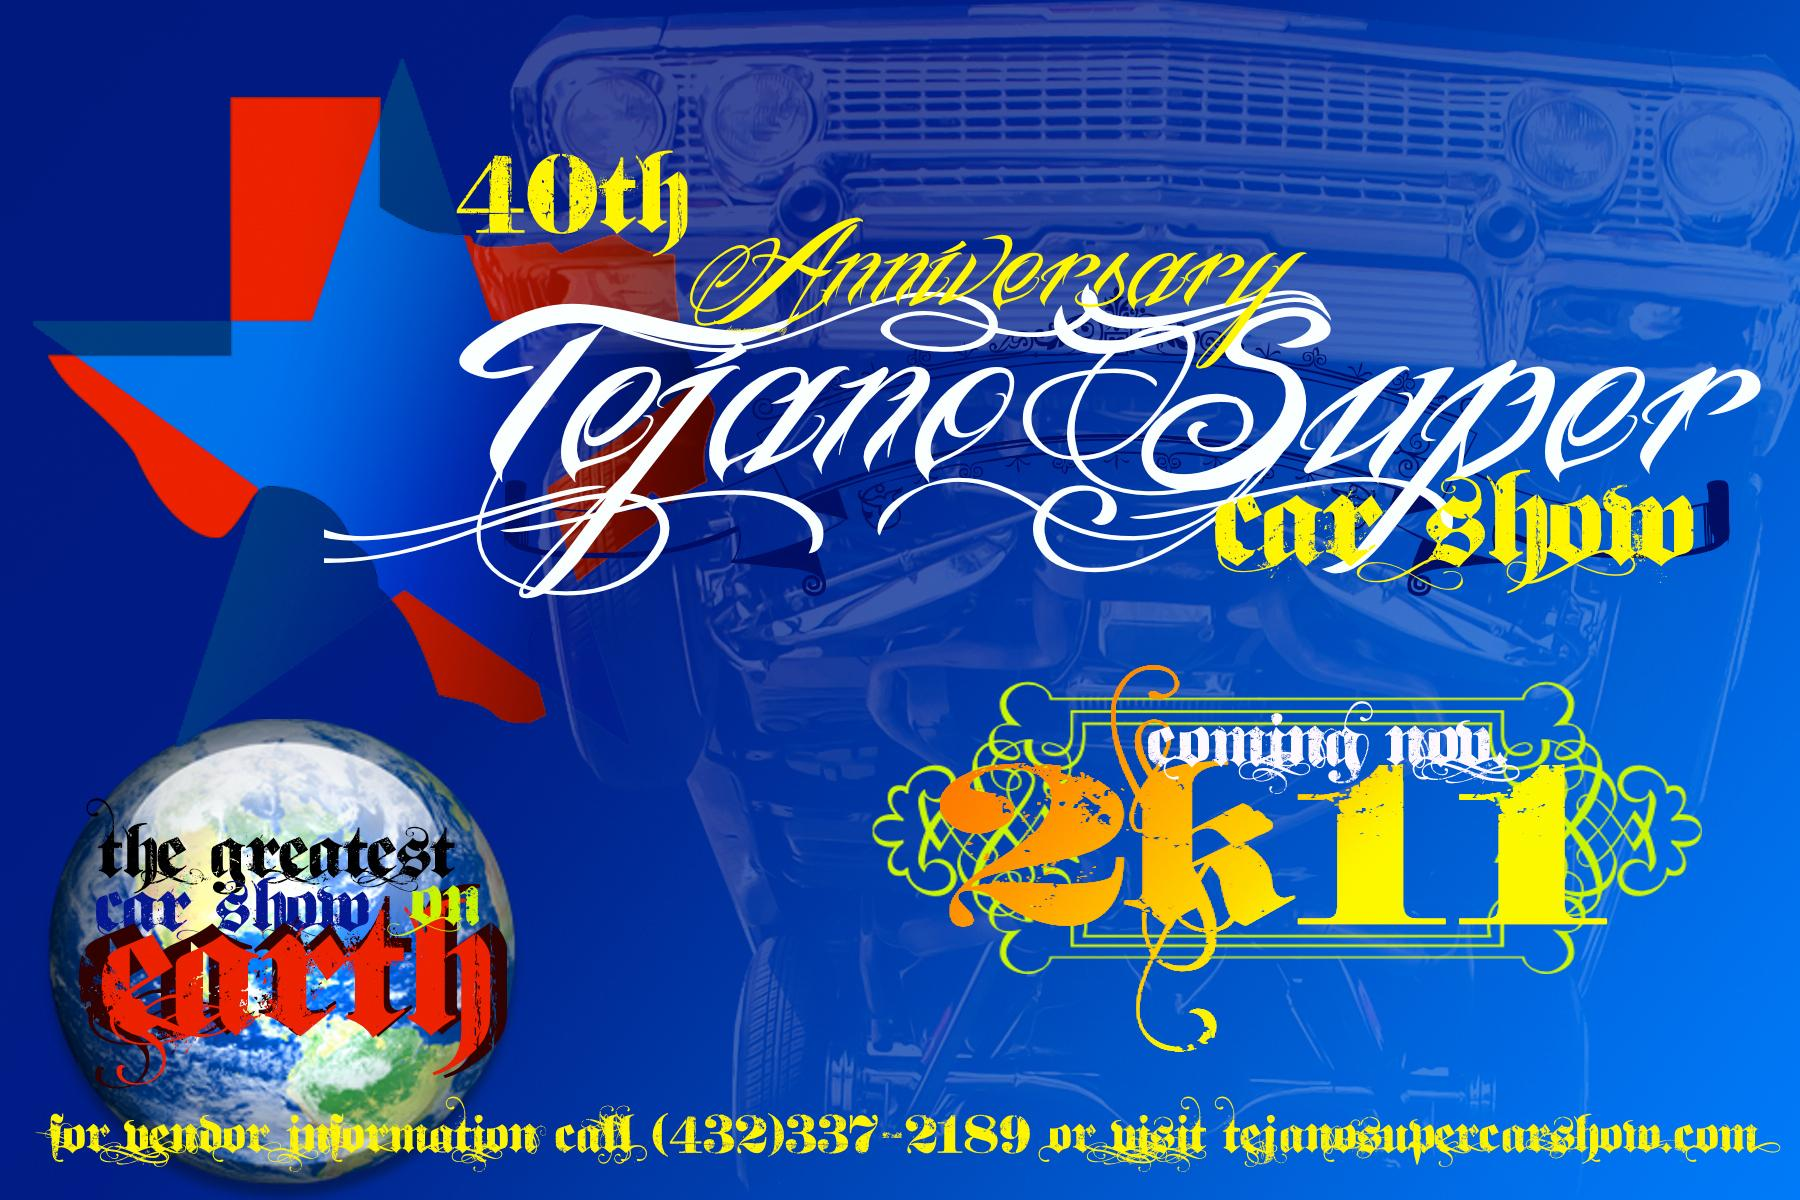 lrmp-1109-01-o-40th-anniversary-tejanos-super-car-show-flyer.JPG2